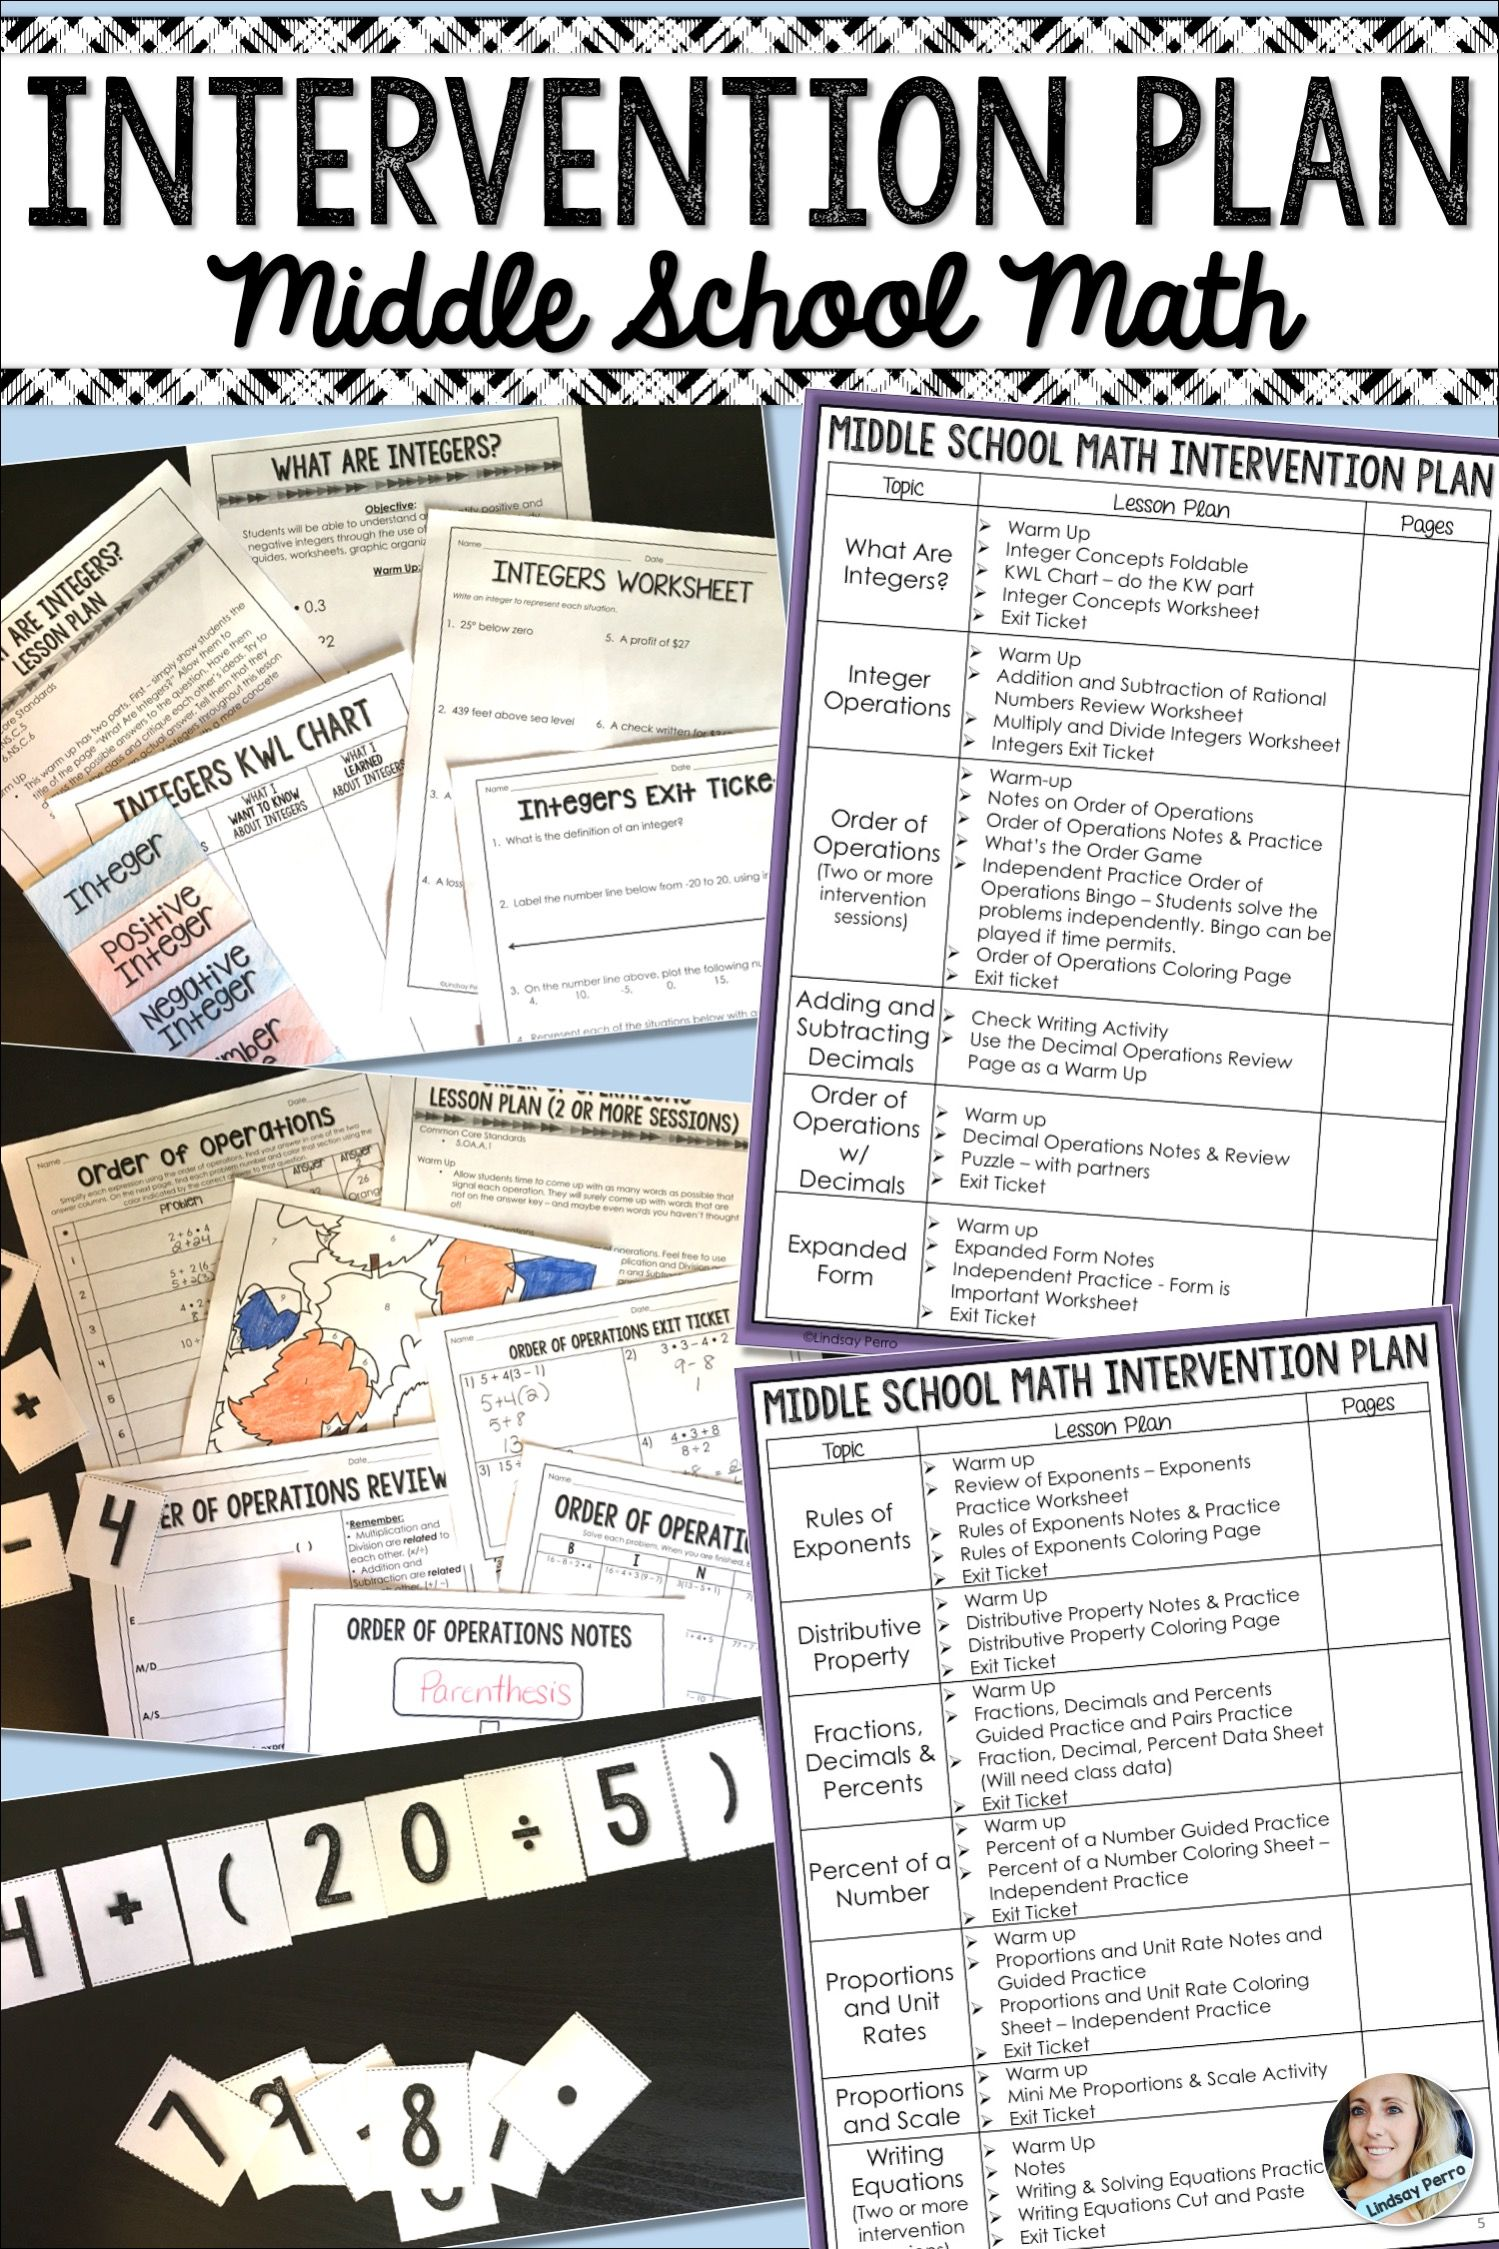 Math Intervention Plan Middle School Common Core